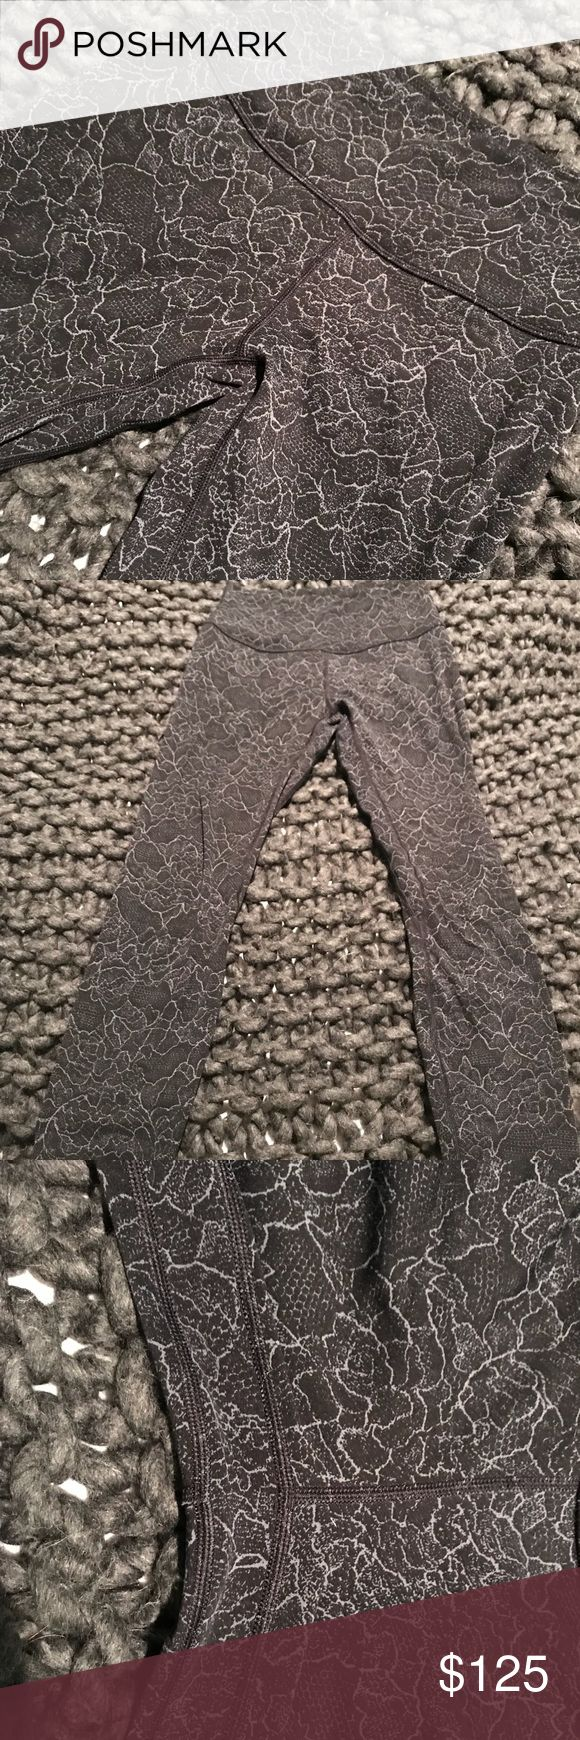 Black landscape cast black lululemon align EUC lululemon align pant 7/8 perfect condition. No flaws no pilling. Sold out color size combo.   Open to trades on other aligns size 4. ISO moody blues, blue shadow, so Merlot, Black lululemon athletica Pants Leggings